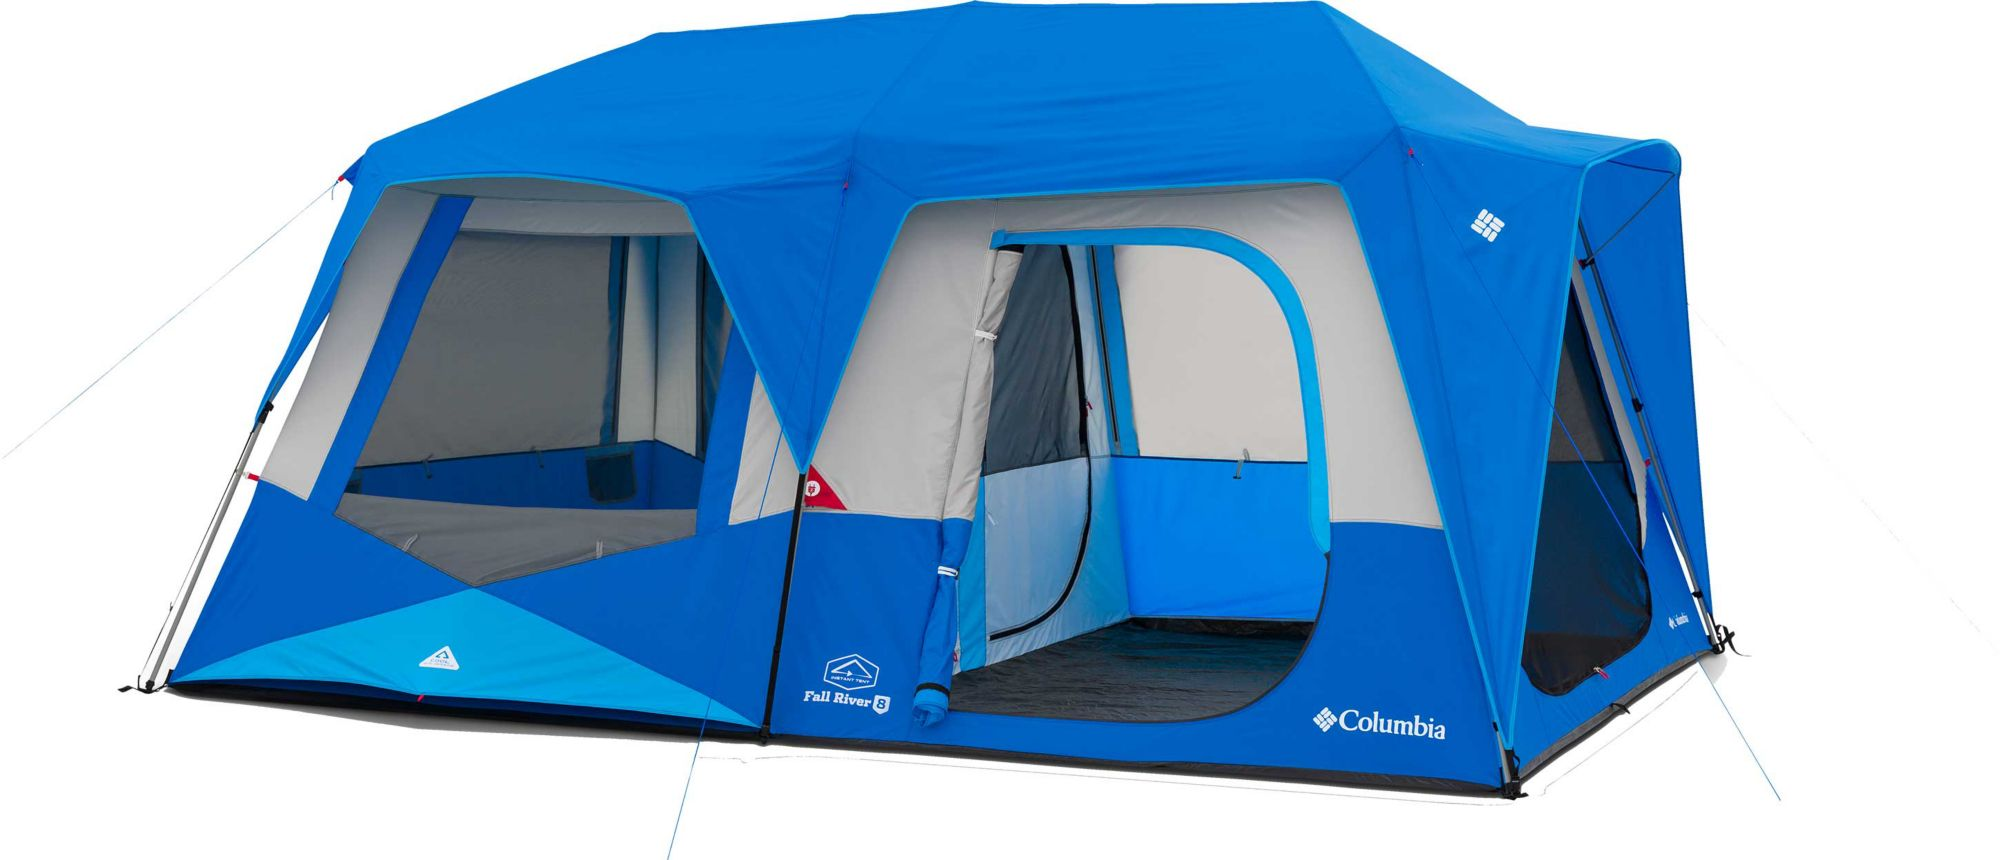 sc 1 st  DICKu0027S Sporting Goods & Columbia Fall River 8 Person Instant Tent | DICKu0027S Sporting Goods